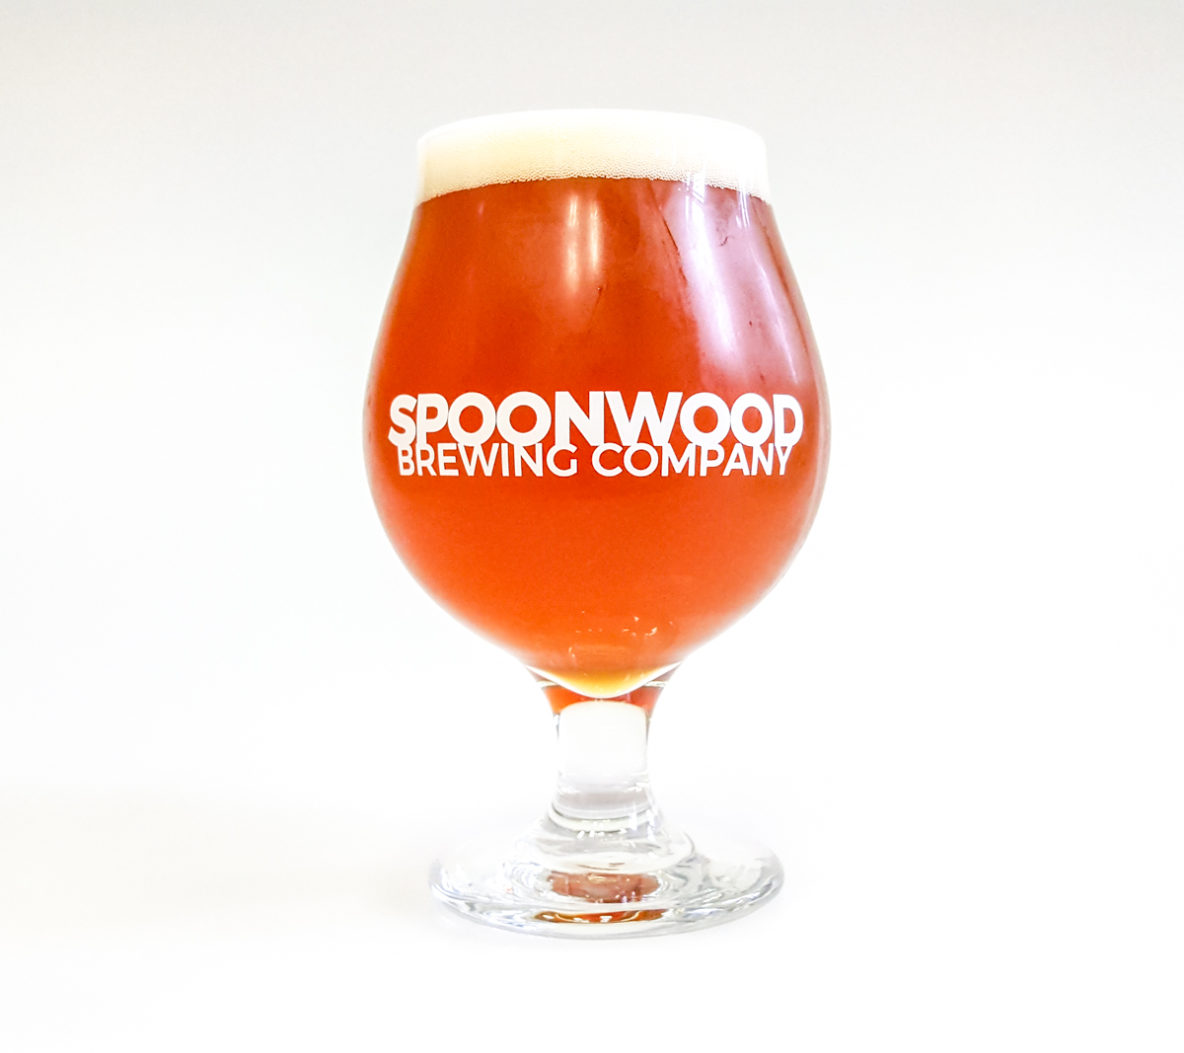 5 oclock shadow spoonwood brewing-1